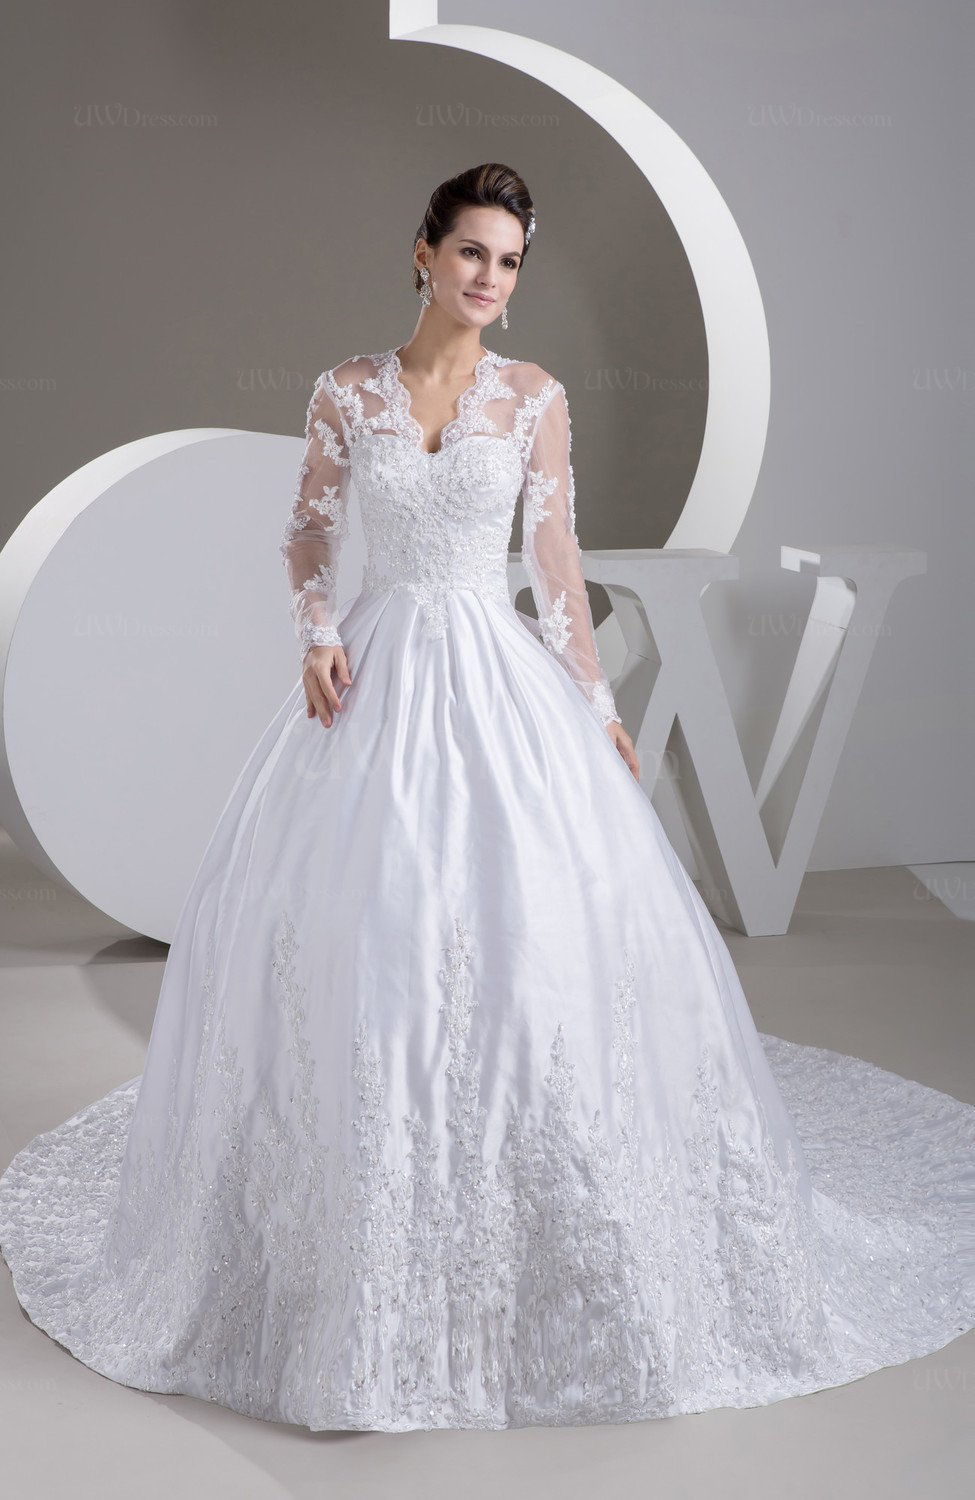 Wedding Dresses - UWDress.com